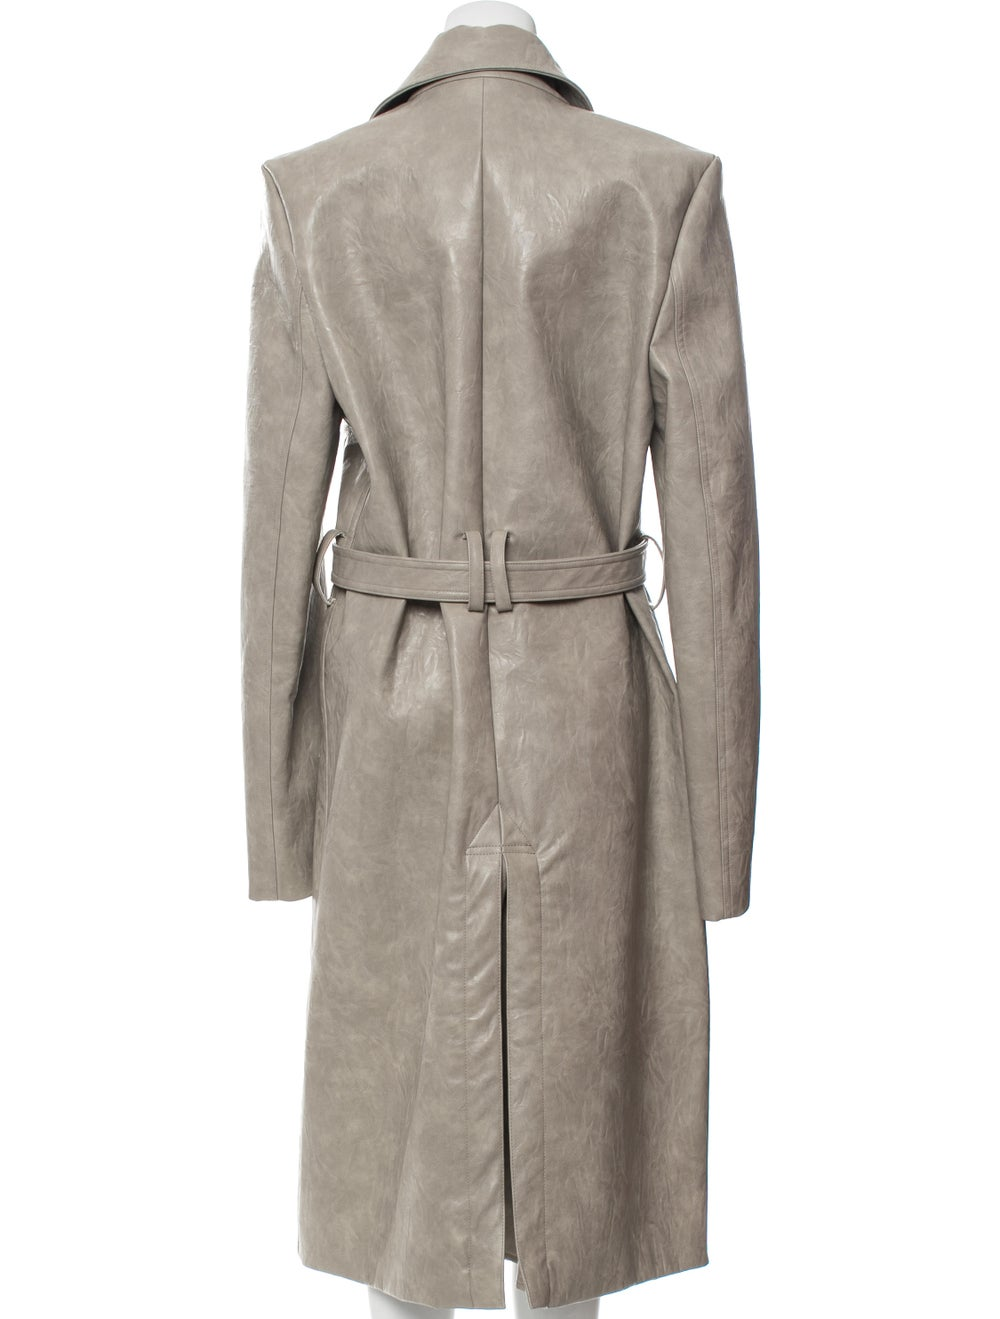 Y/Project Trench Coat w/ Tags Brown - image 3